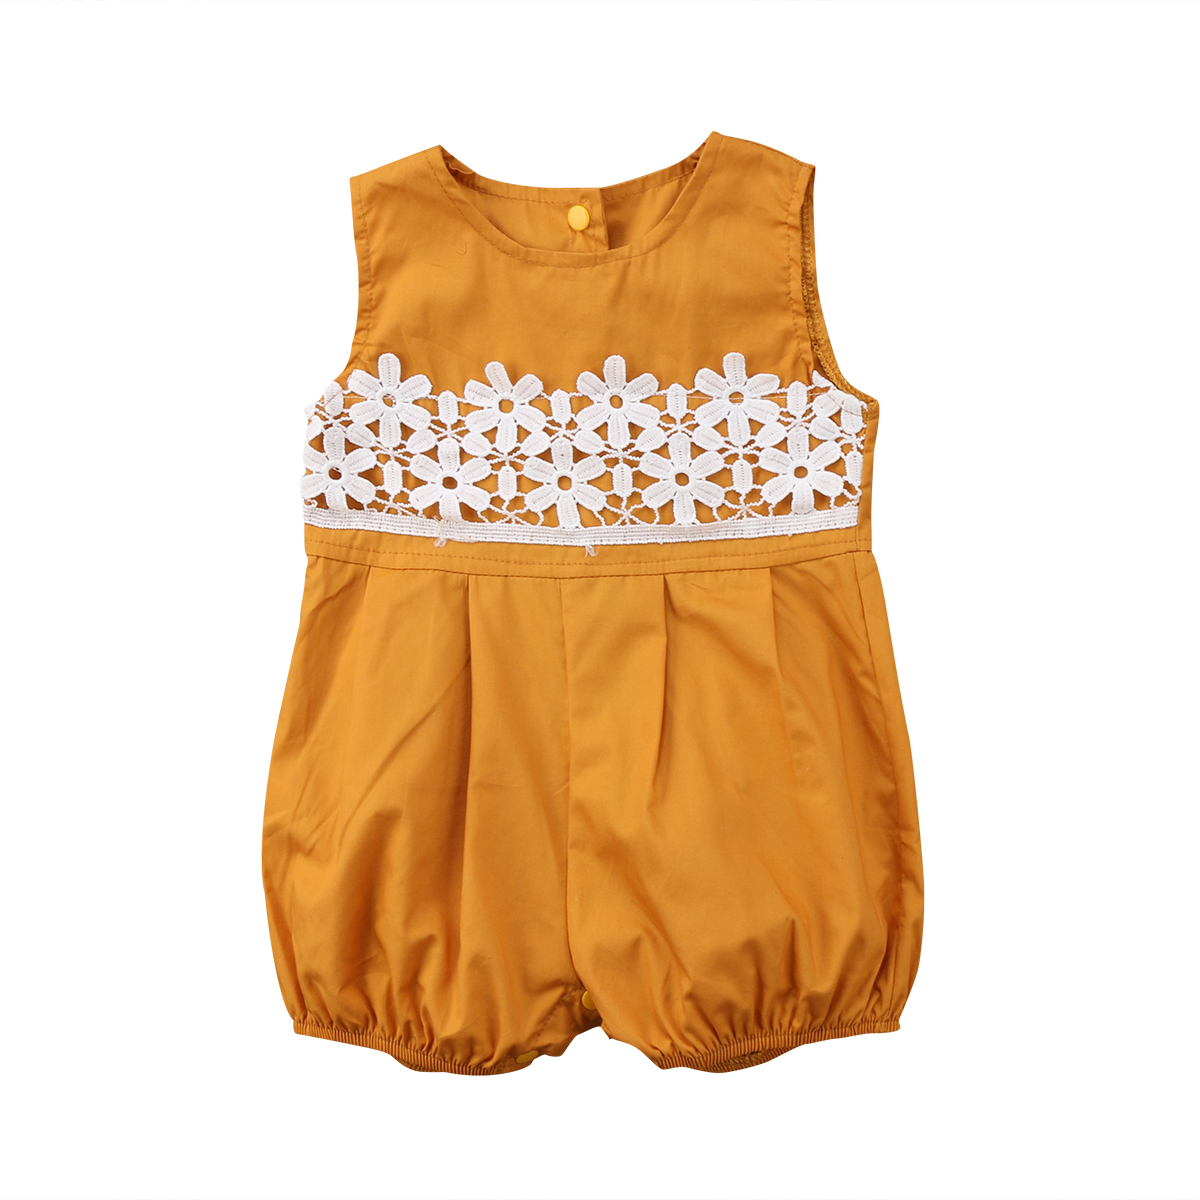 Cute Newborn Baby Girls Romper Floral Lace Sleeveless O Neck Jumpsuit Infant Clothes Outfits Summer New infant baby girls romper lace floral sleeveless belt romper jumpsuit playsuit one piece outfit summer newborn baby girl clothes